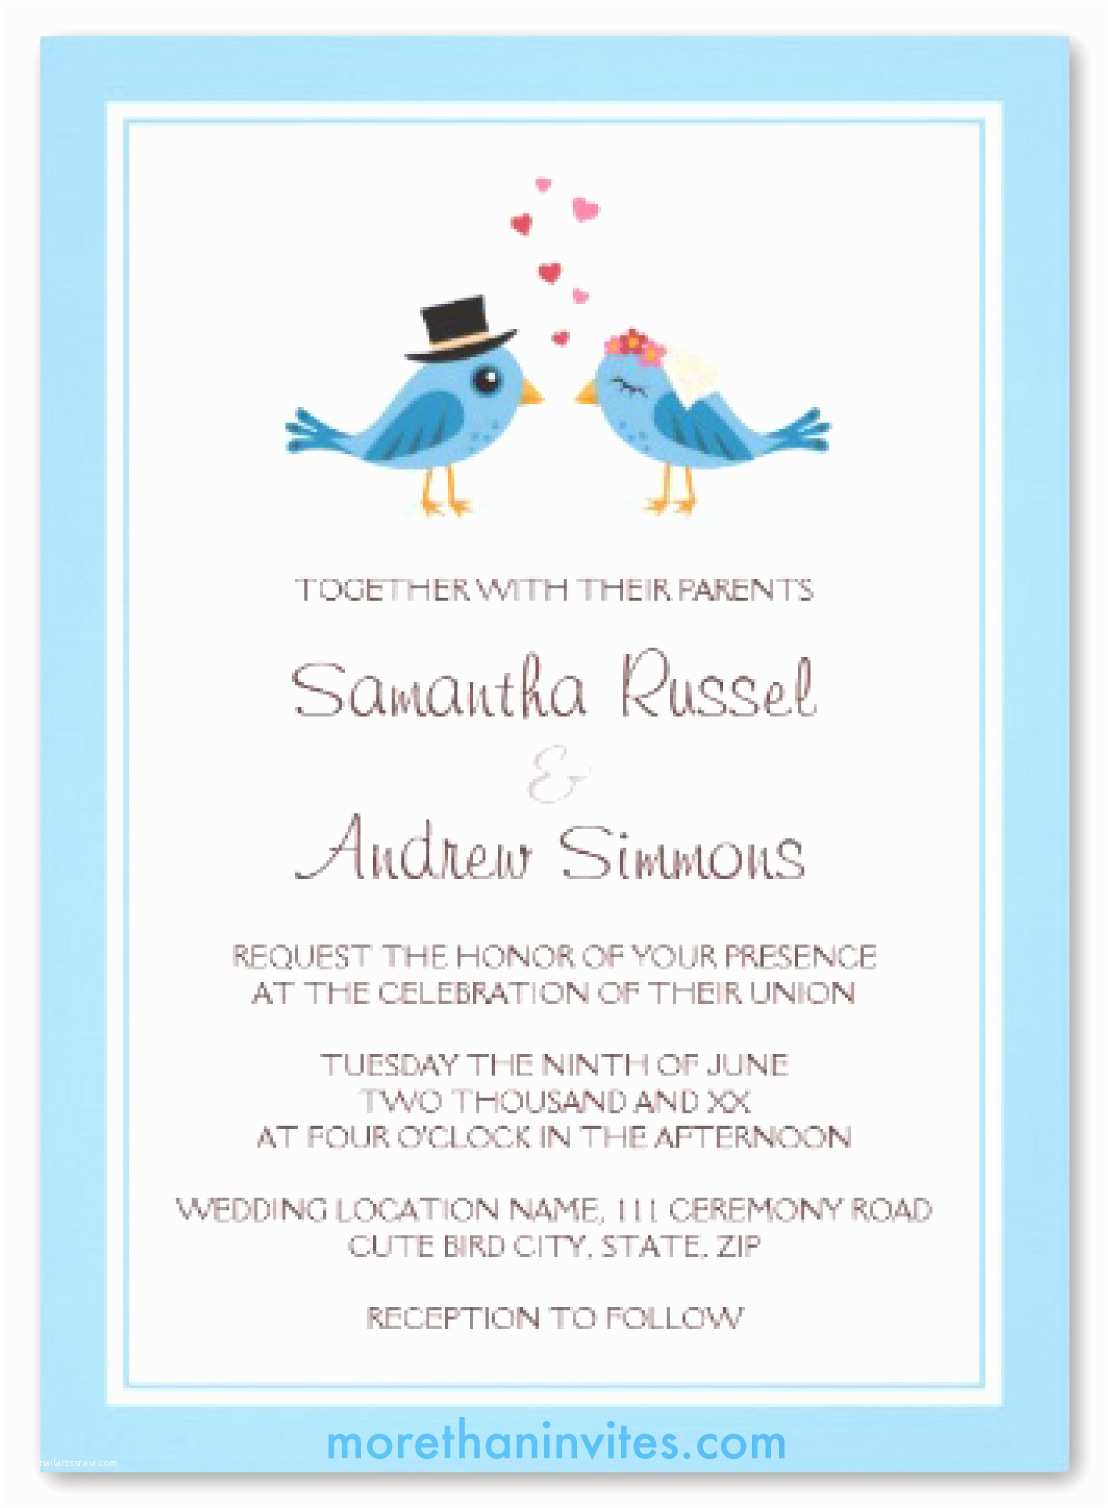 Cute Stamps for Wedding Invitations Cute Blue Bird Bride and Groom Wedding Invitation More